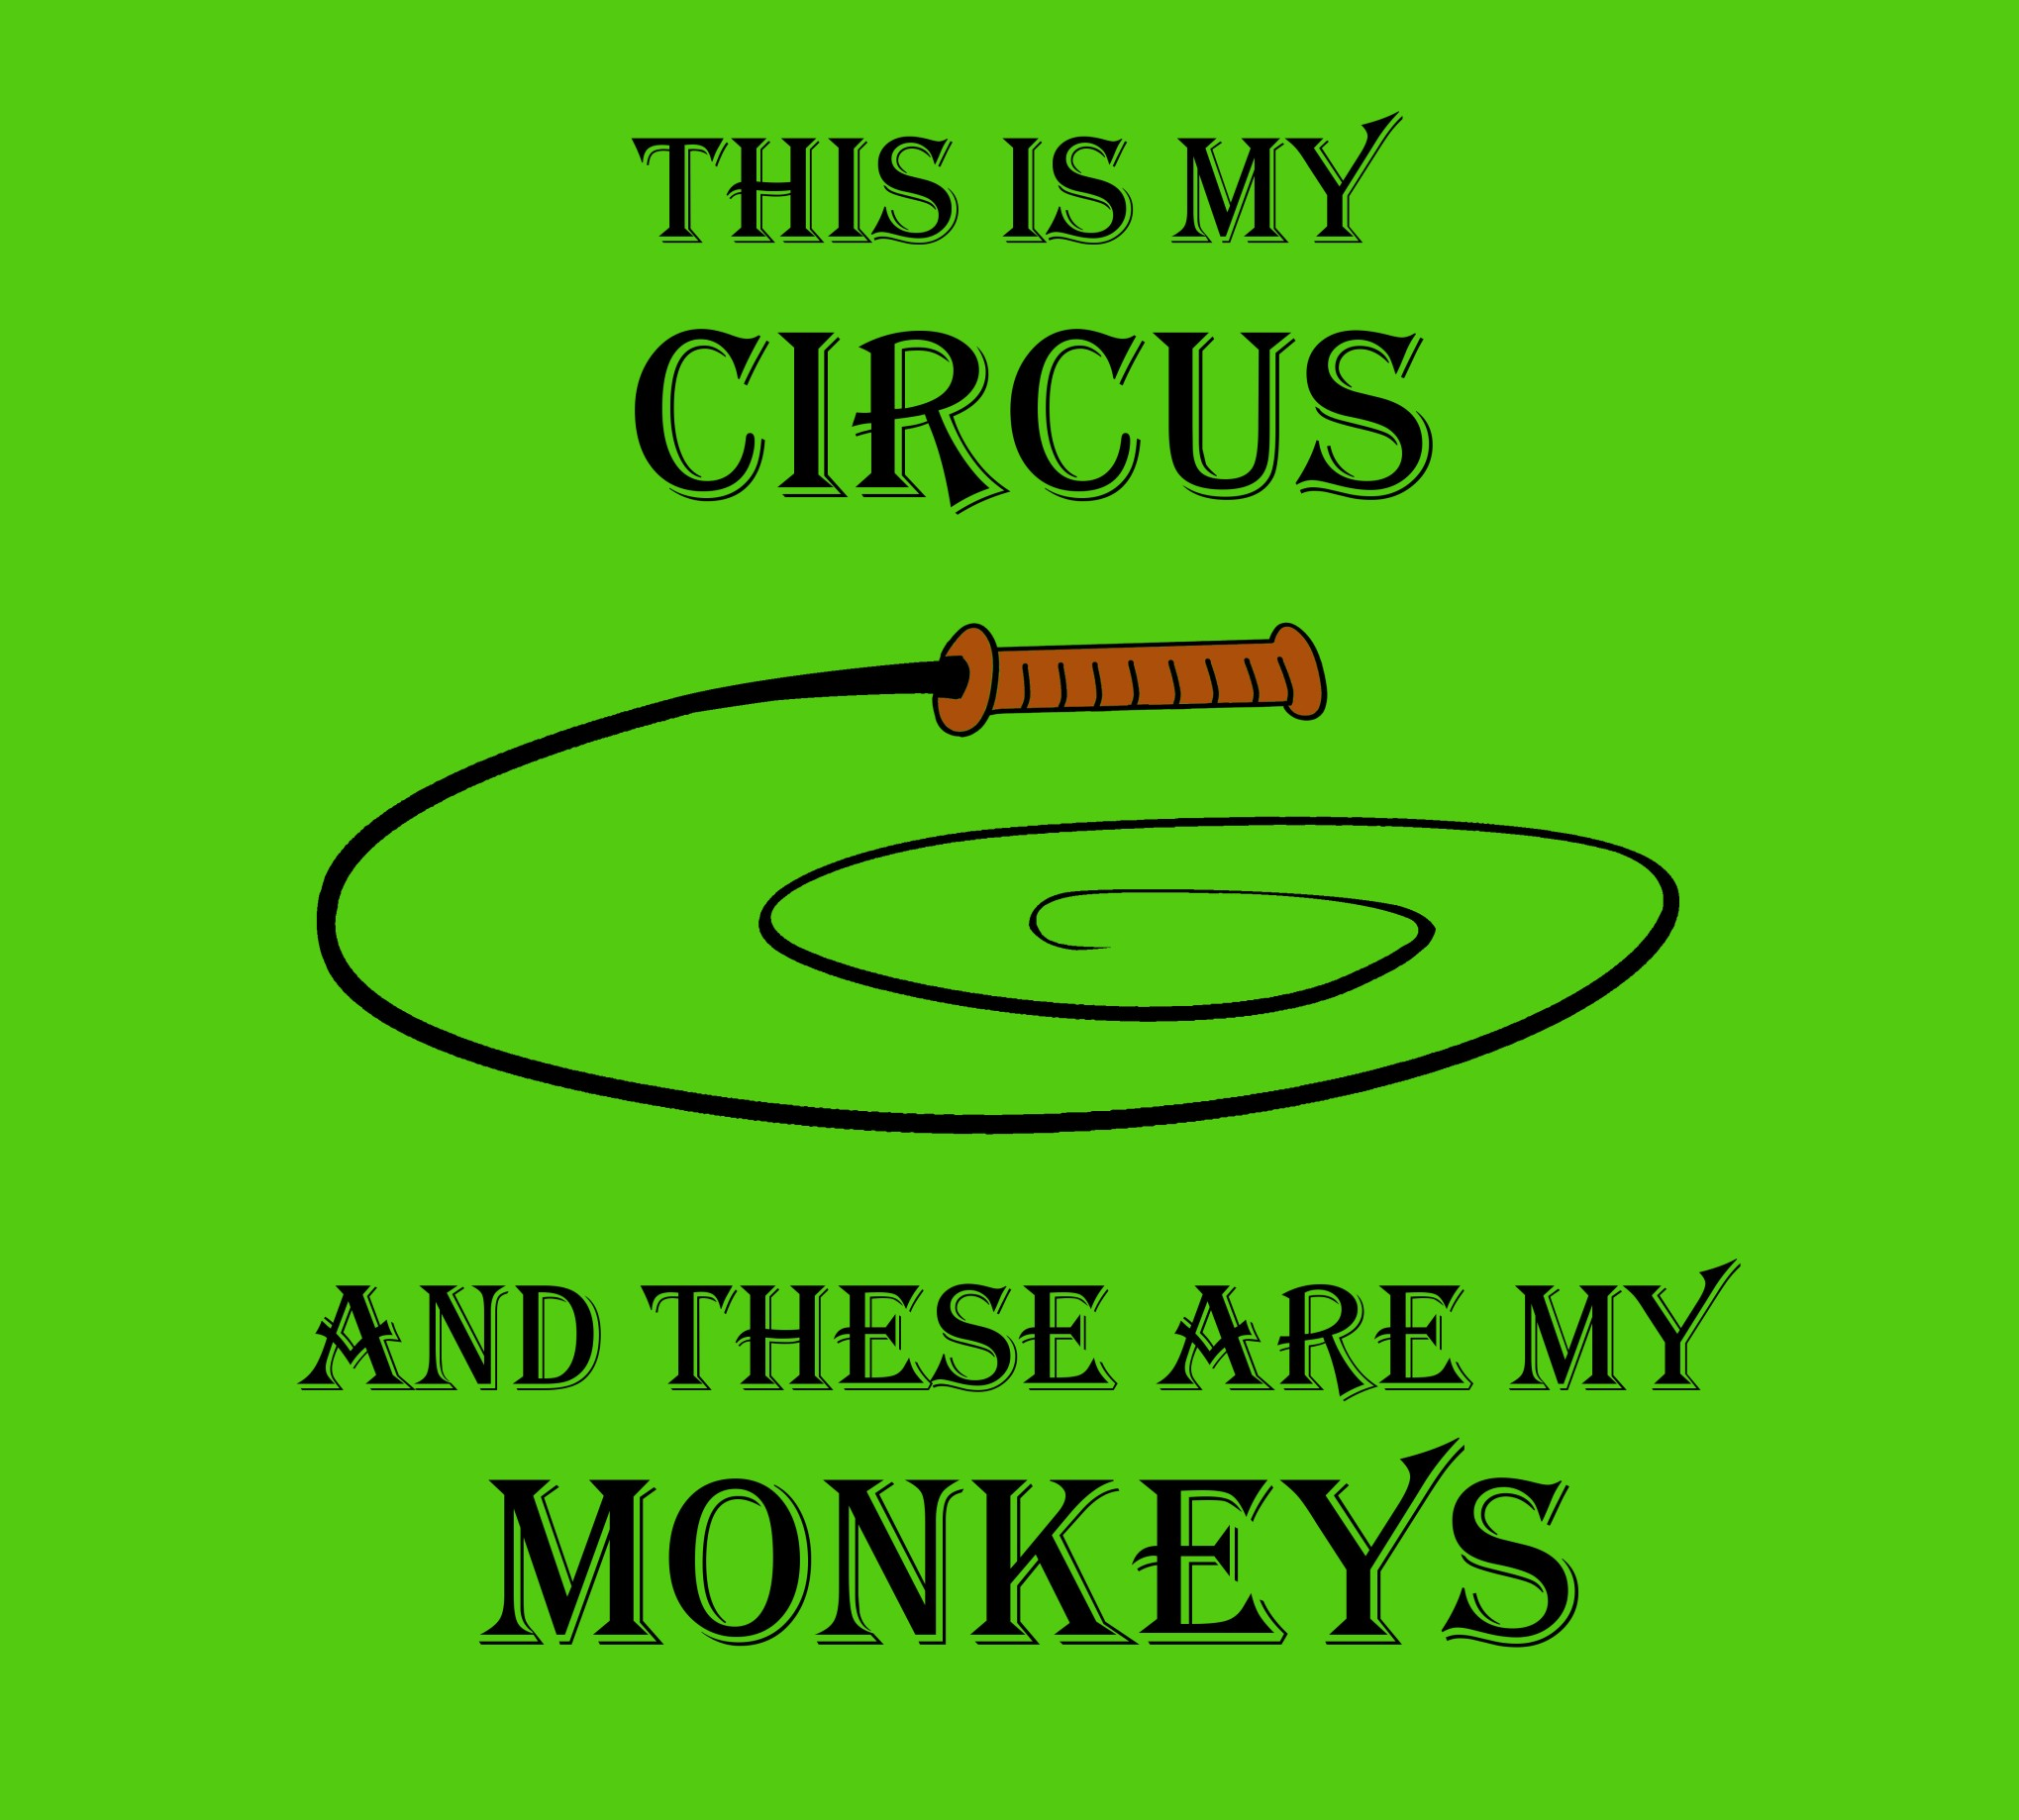 Ringmaster's Whip image. This is my circus and these are my monkeys. Design by Tipsy Lizard.